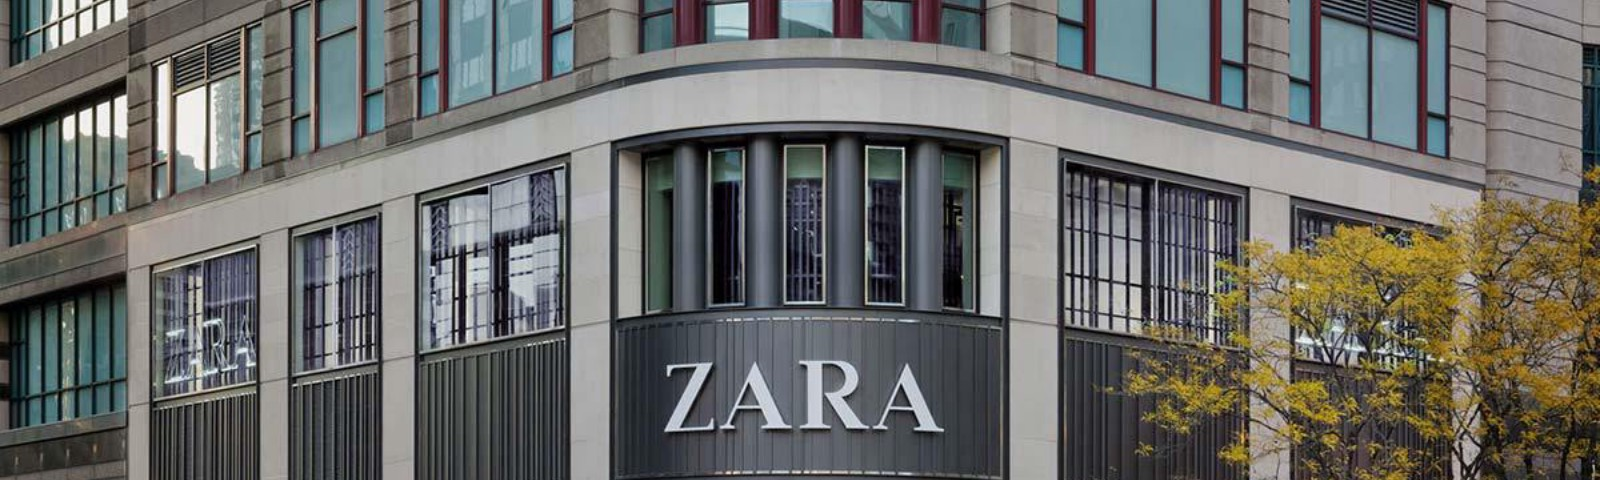 Zara Michigan Avenue Chicago